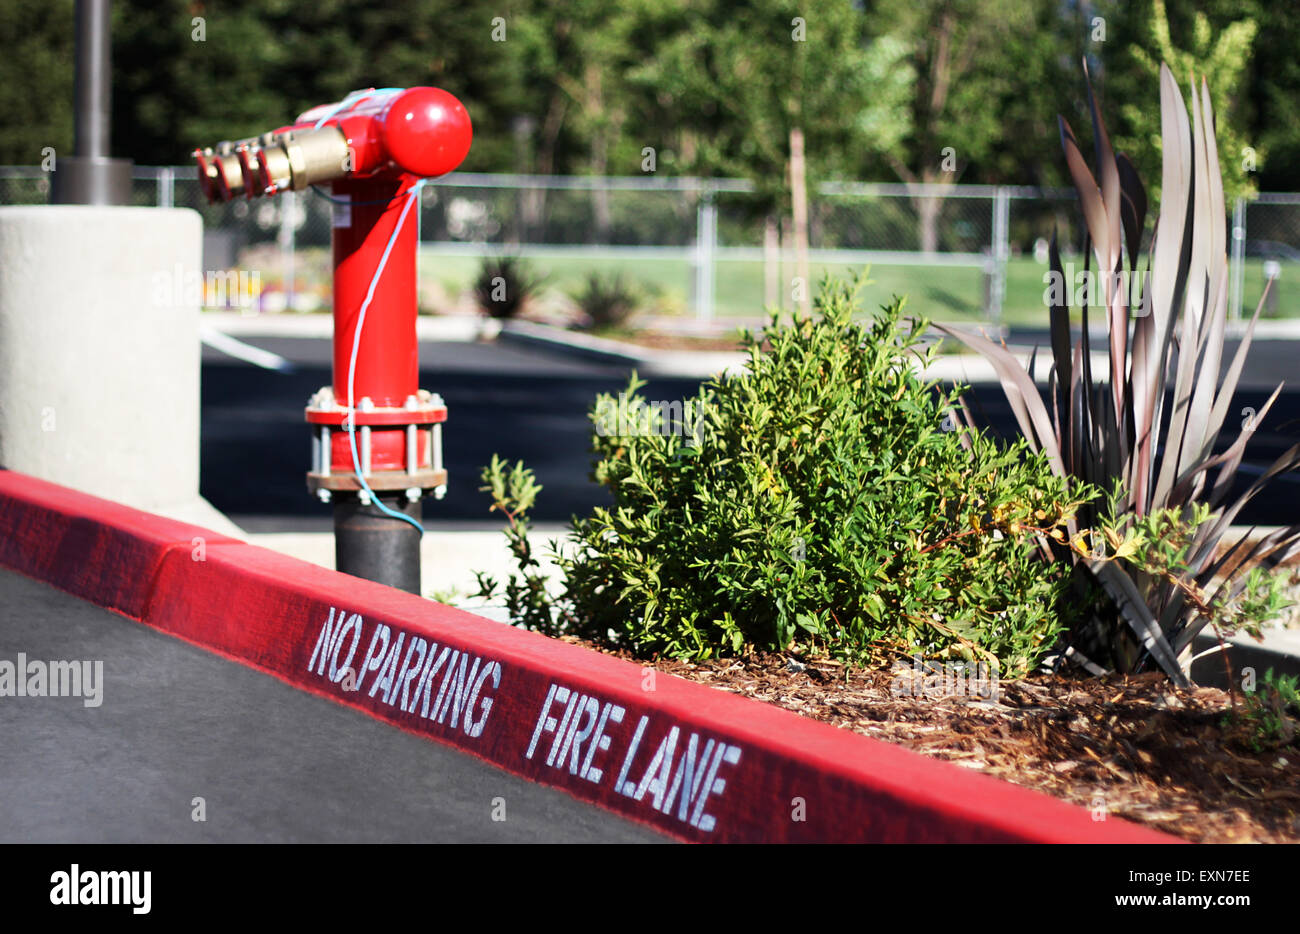 'No Parking Fire Lane' sign on the parking lot, with a fire hydrant on the background. - Stock Image